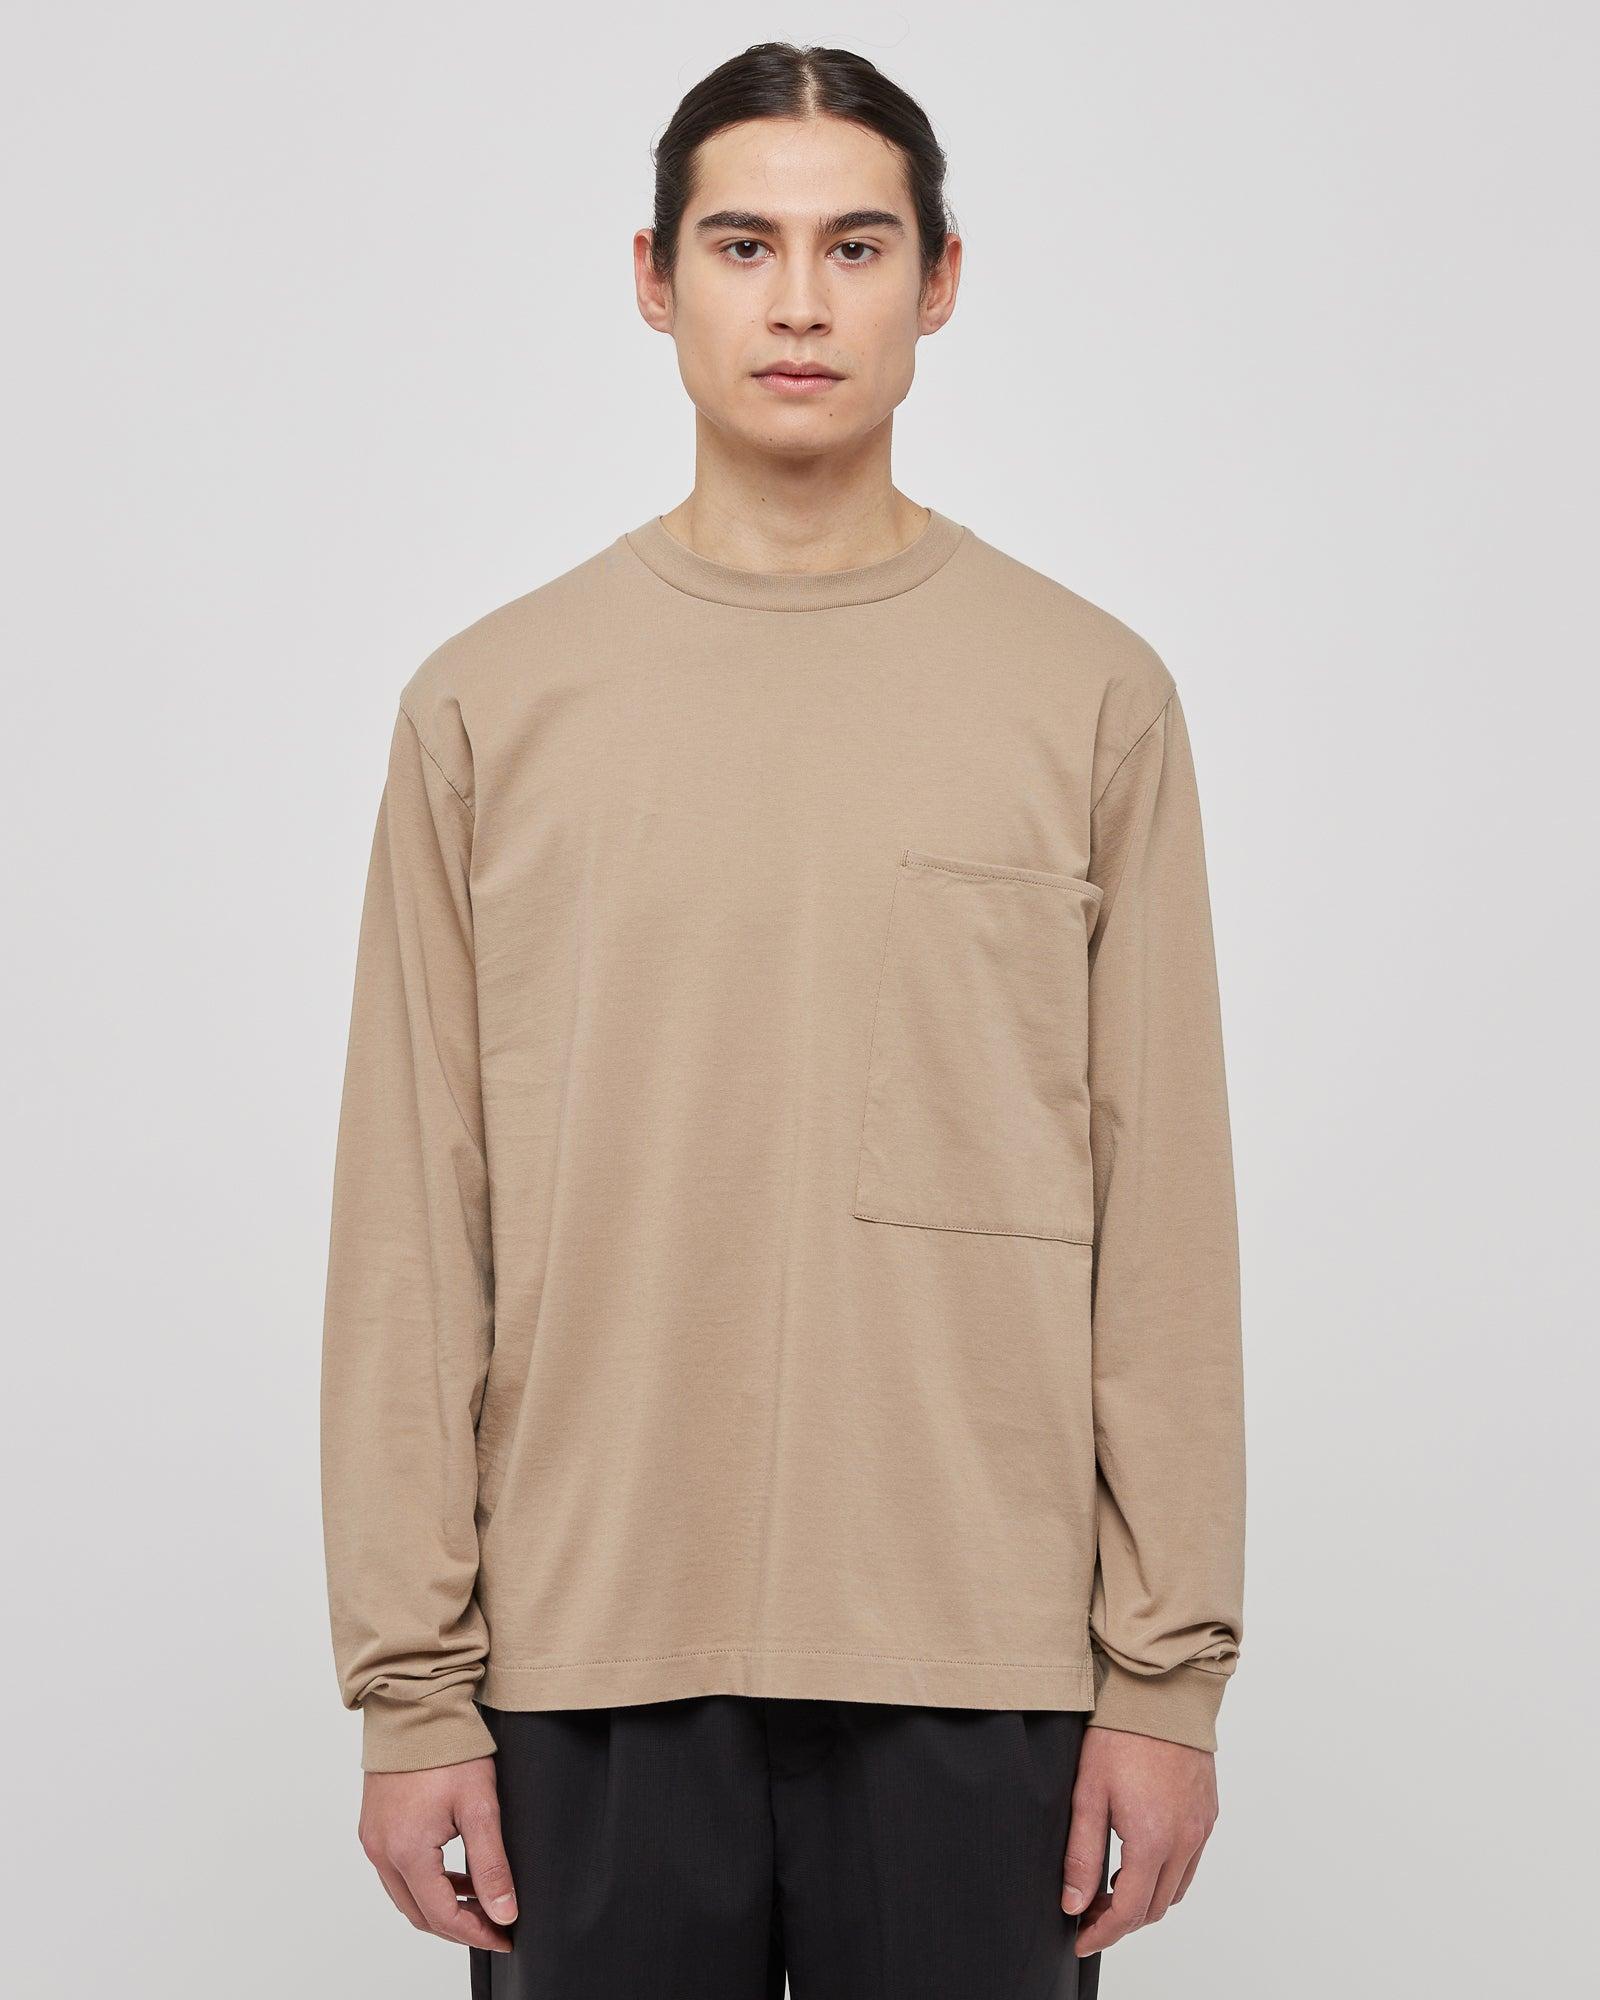 L/S Large Pocket Shirt in Beige